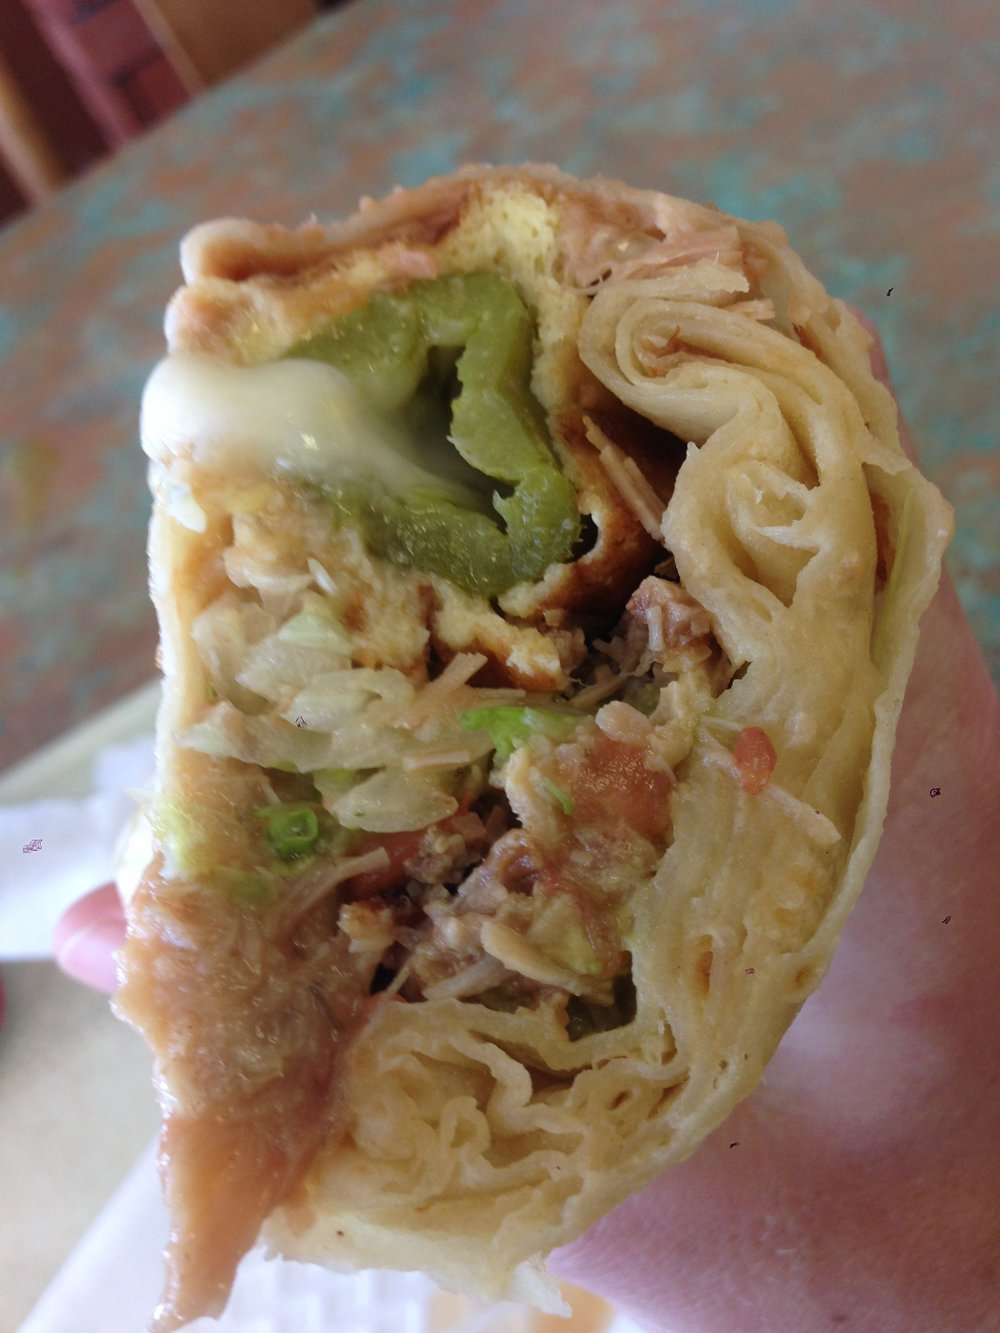 What it looks like before you drown it in salsa. Chile relleno burrito, add rice and carnitas. Los Reyes.